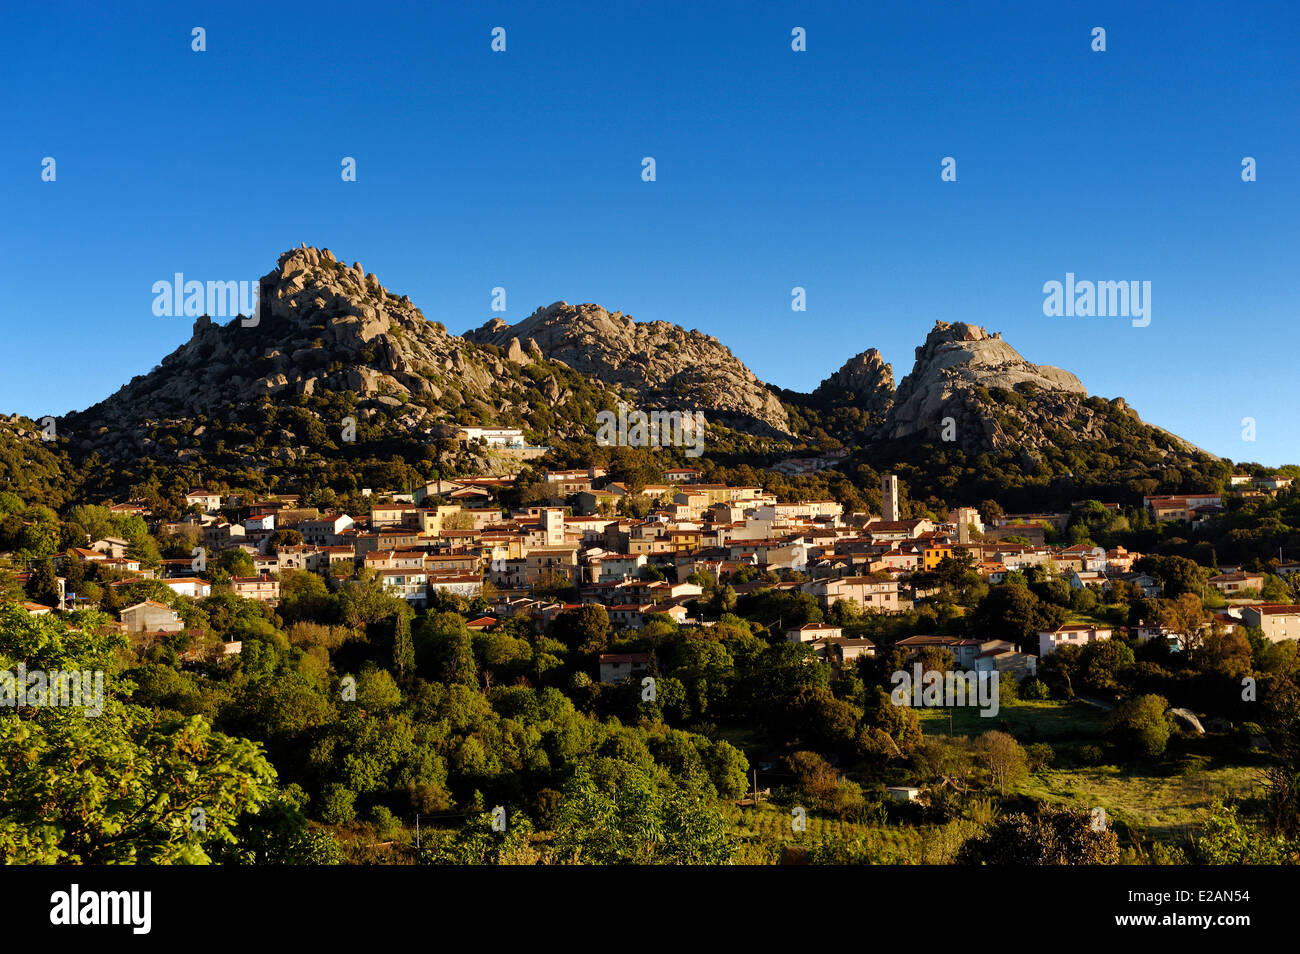 Italy, Sardinia, Olbia Tempio Province, Aggius, view of the village with the mountains of La Croce and Sozza background - Stock Image